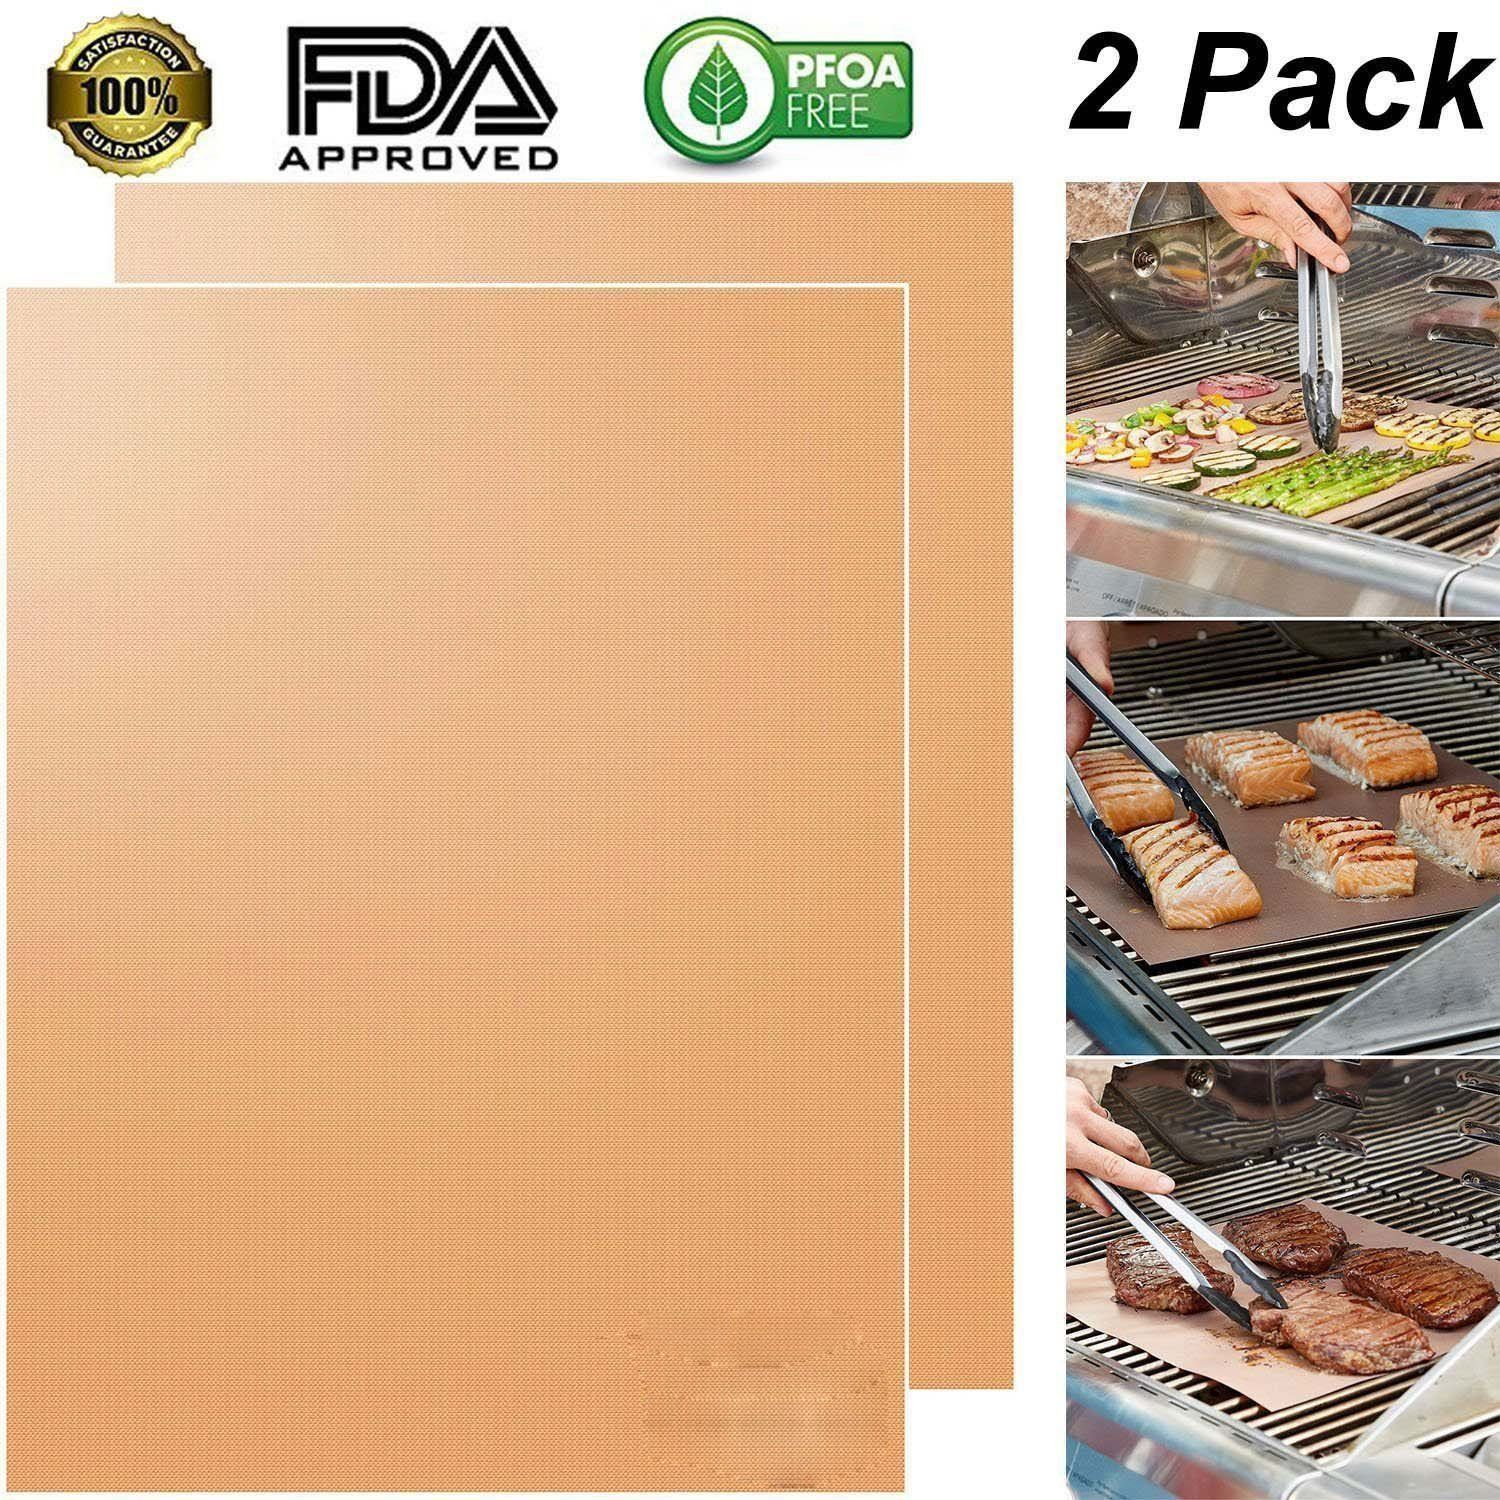 2 Pcs Nonstick Kitchen Copper Chef Grill and Bake Mats Outdoor BBQ Tools BBQ Grill Mat Barbecue Roast Sheet Pad Cooking Tools